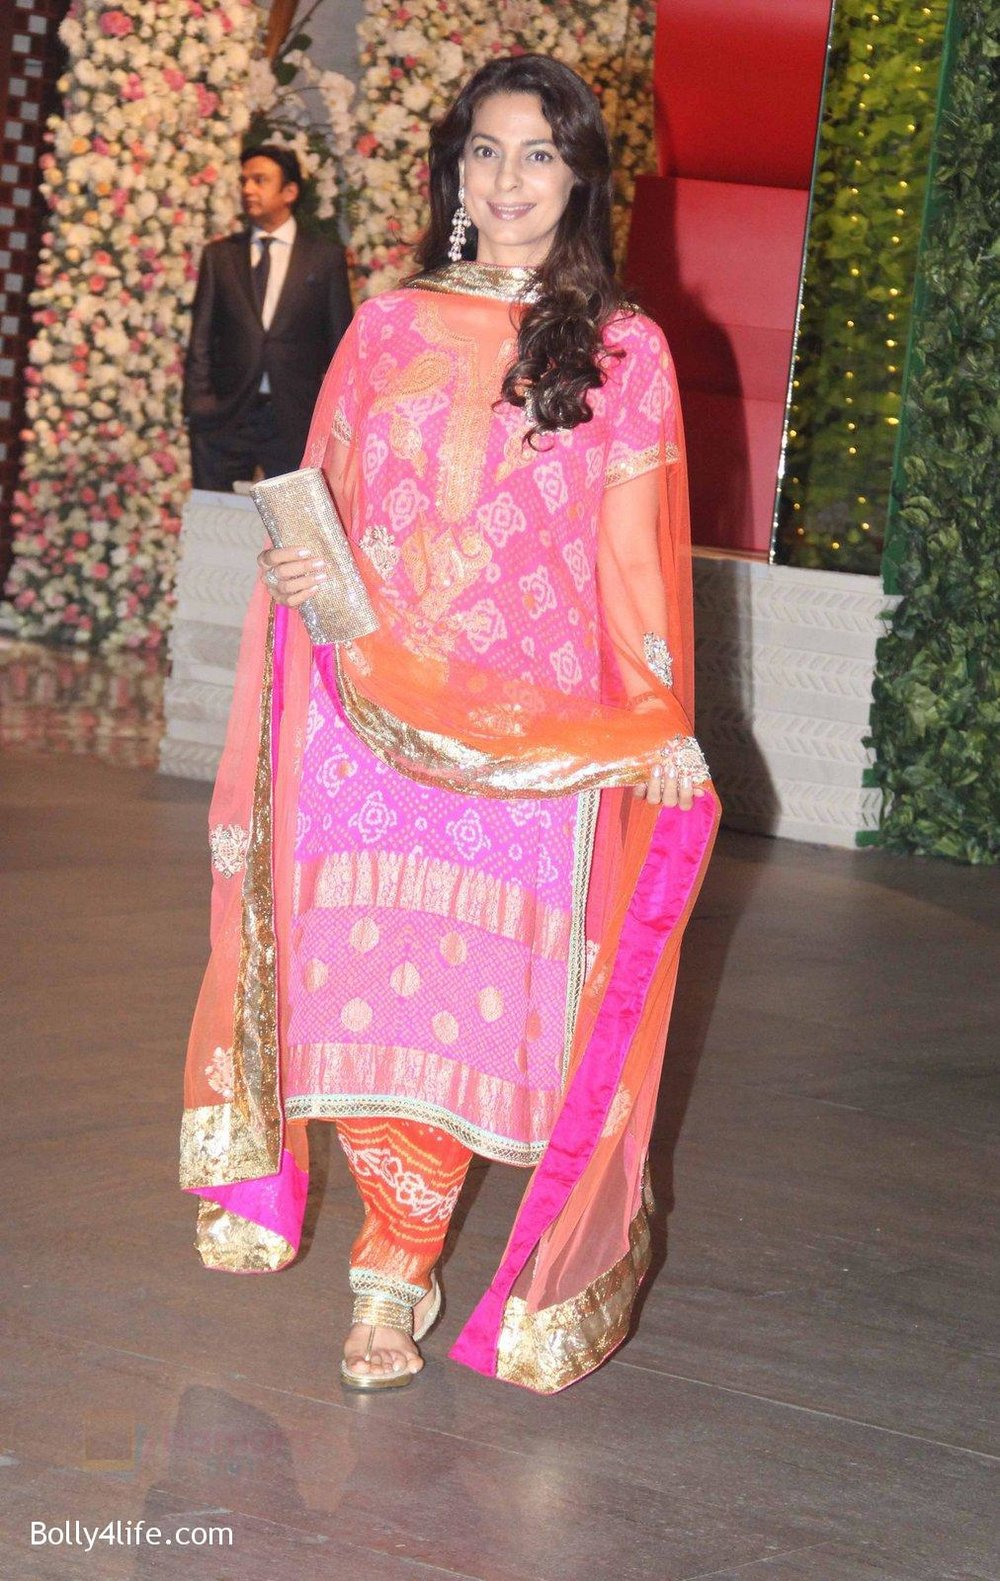 Juhi-Chawla-at-the-Ambanis-wedding-party-of-their-niece-Isheta-Salgaoncar-1.jpg